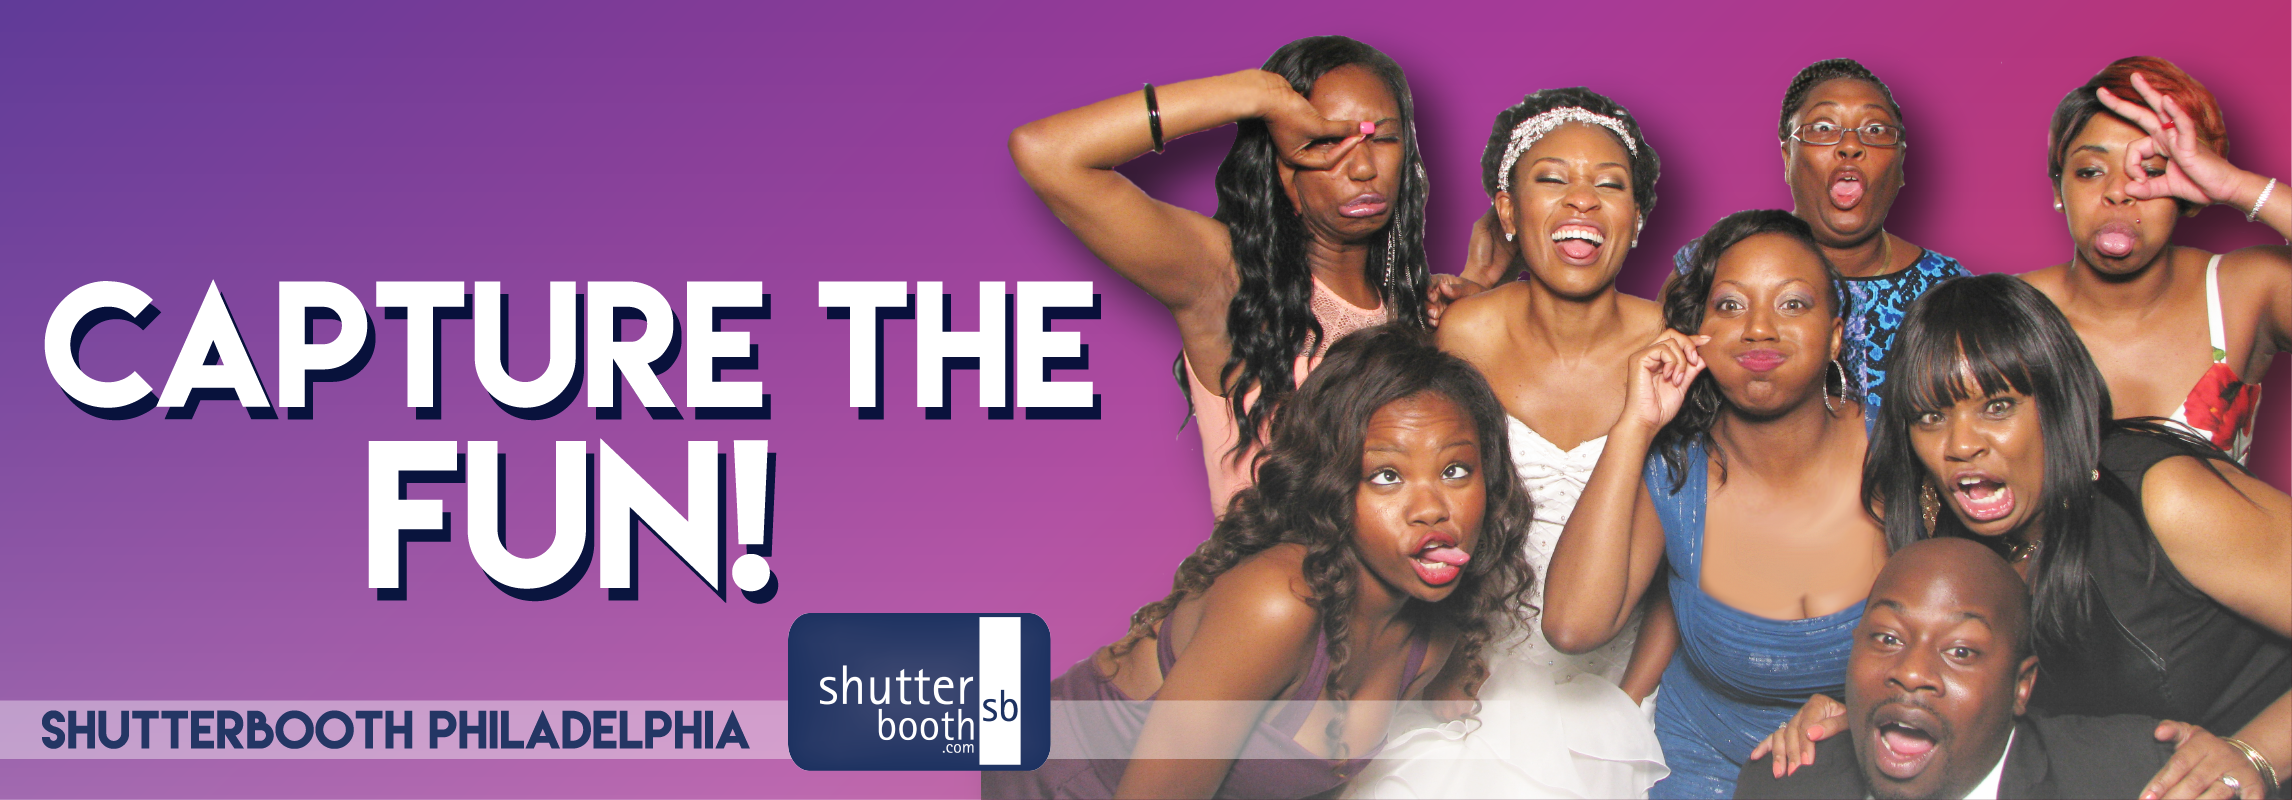 ShutterBooth Philadelphia Capture the FUN Header